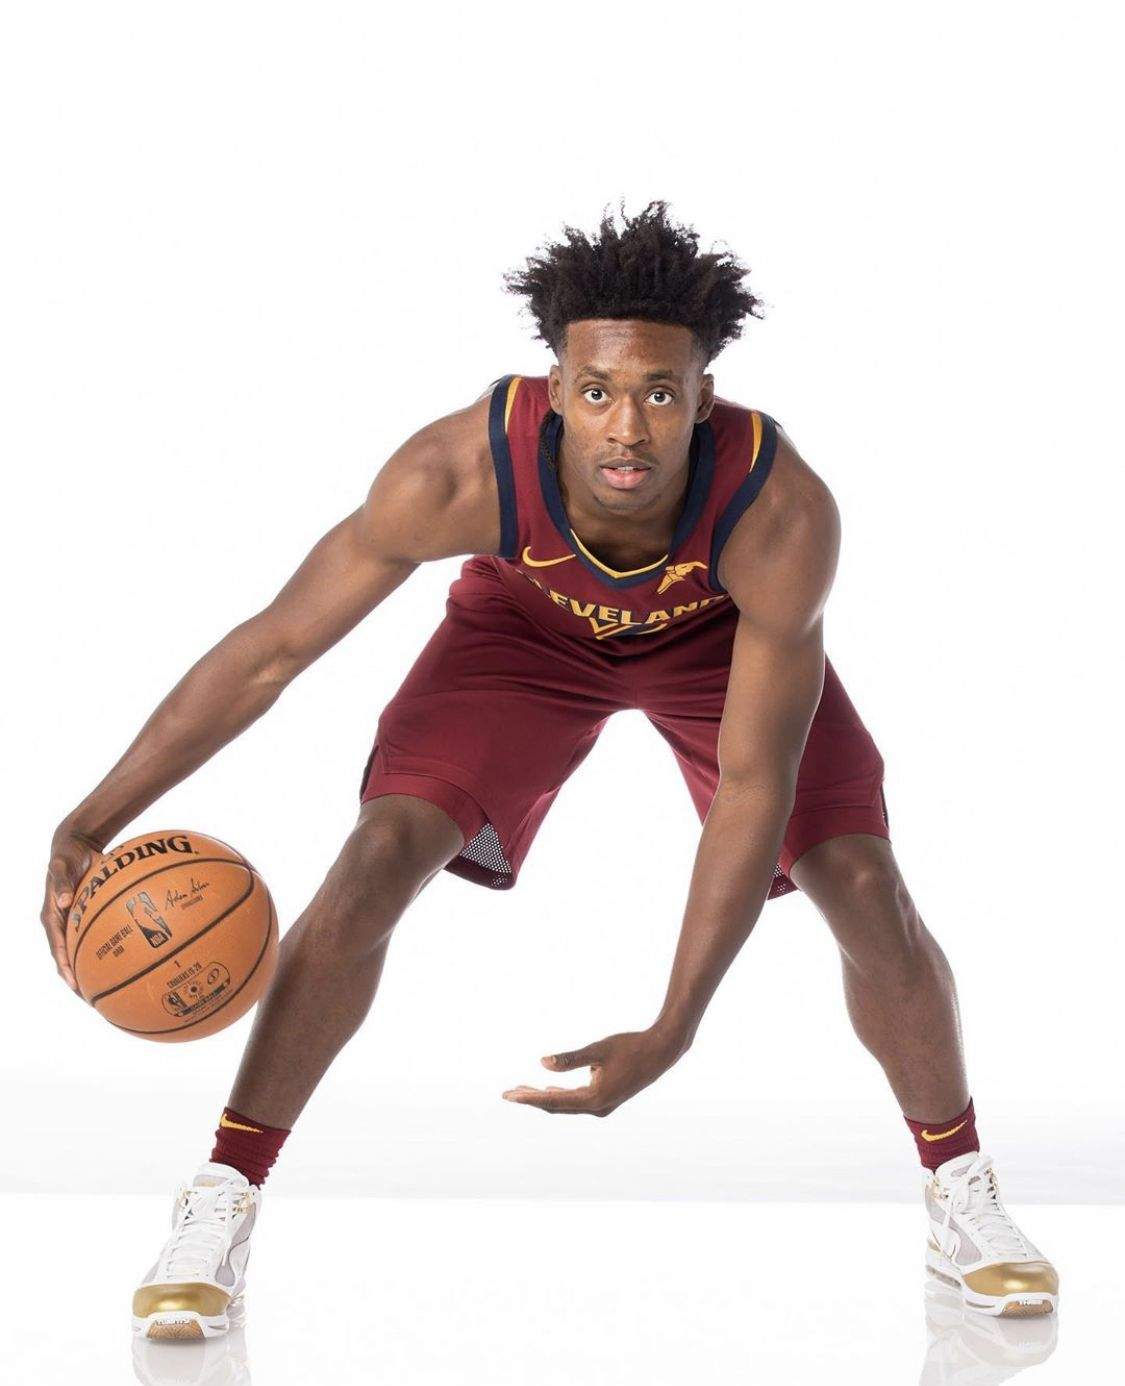 Pin By Derek Olsen On Collin Sexton In 2020 Cleveland Cavs National Basketball Association Basketball Association